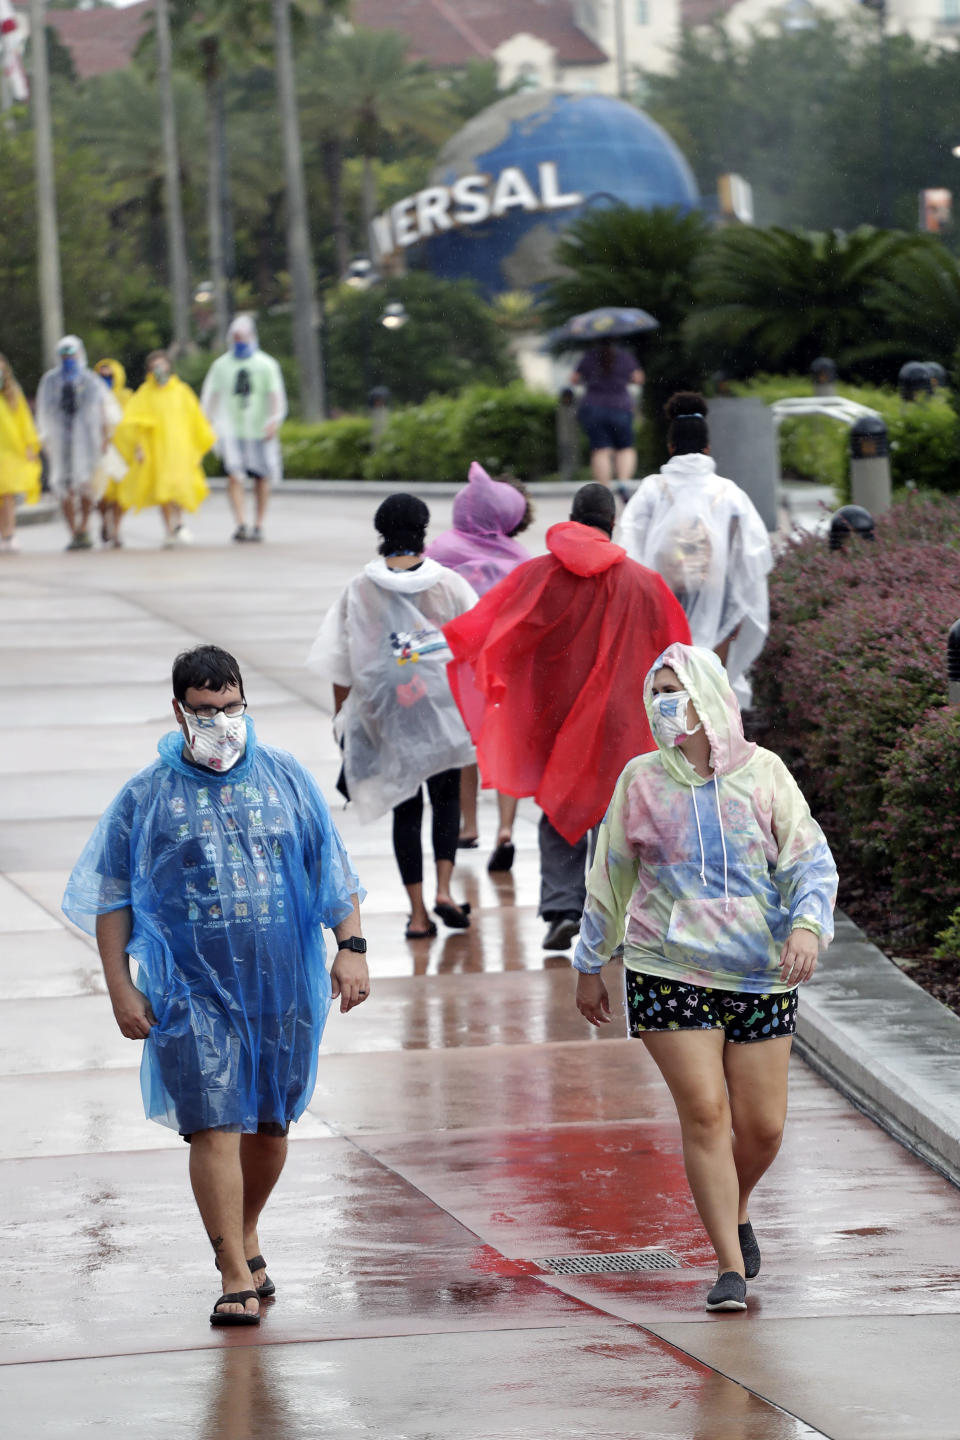 In this Wednesday, June 3, 2020 photo, guests brave a rainy day at Universal Studios Wednesday, June 3, 2020, in Orlando, Fla. The Universal Studios theme park has reopened for season pass holders and will open to the general public on Friday, June 5. (AP Photo/John Raoux)